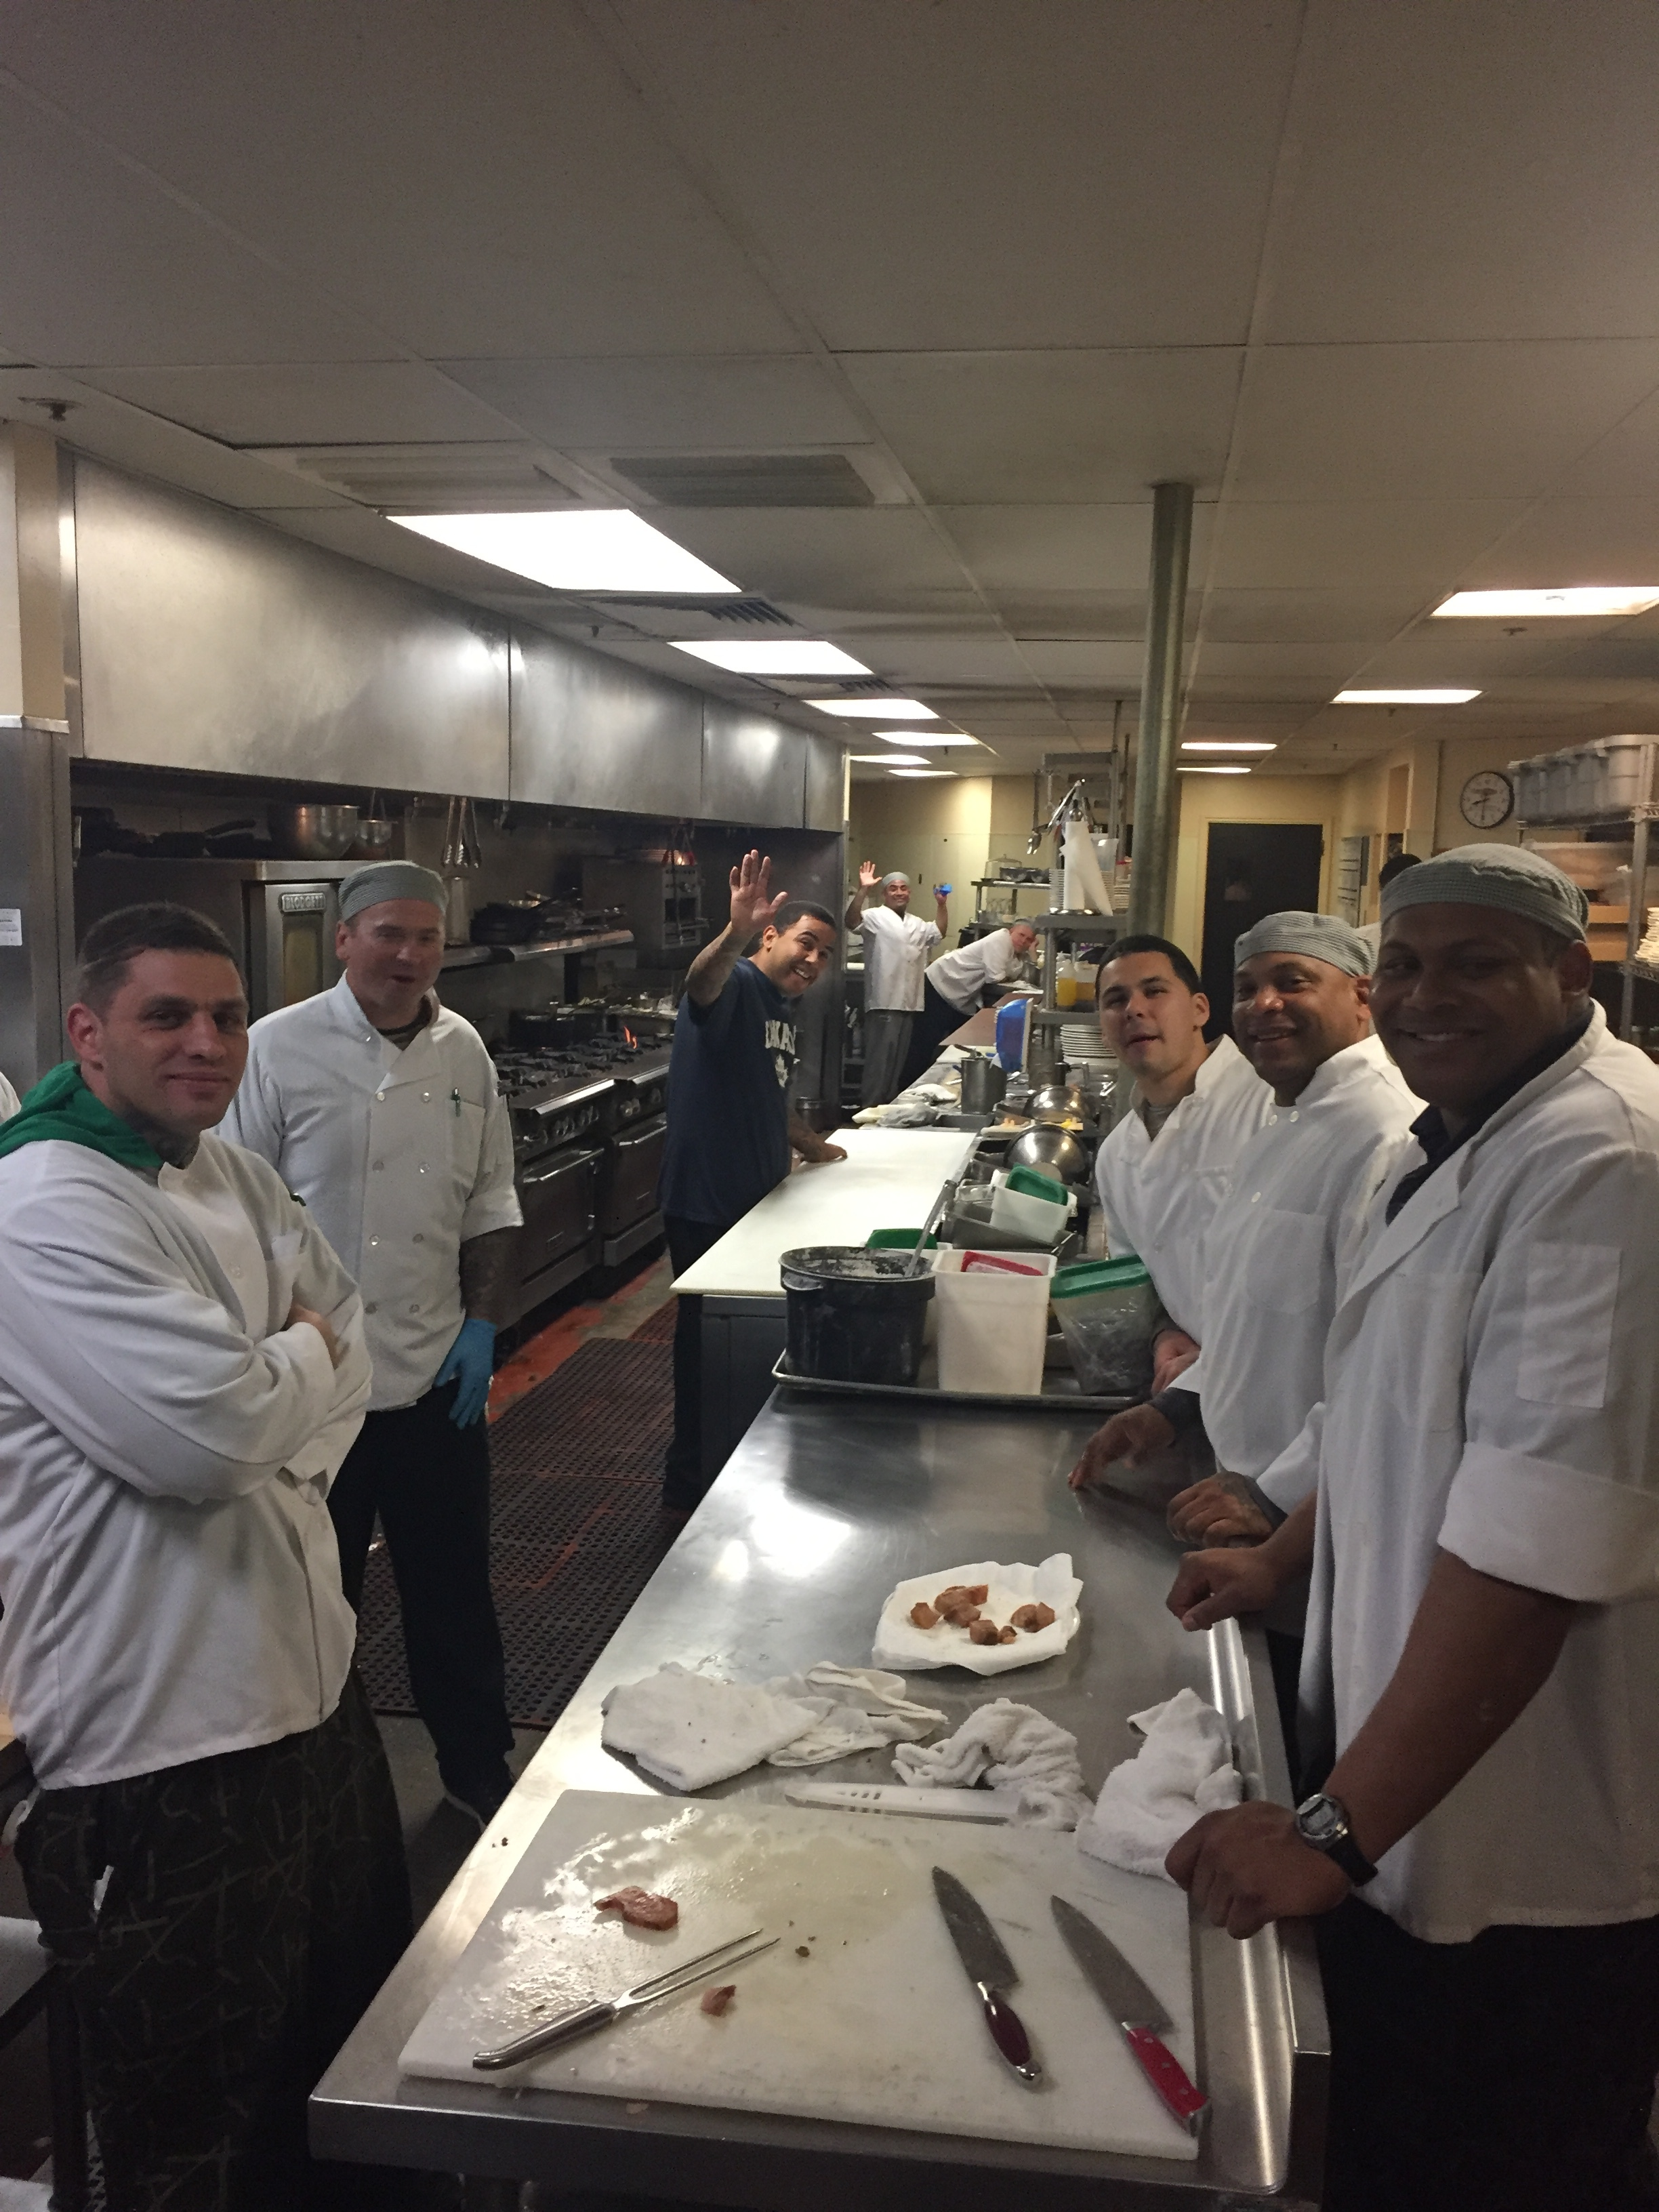 The Delancey Street Foundation's kitchen crew give thanks for the recovered food.